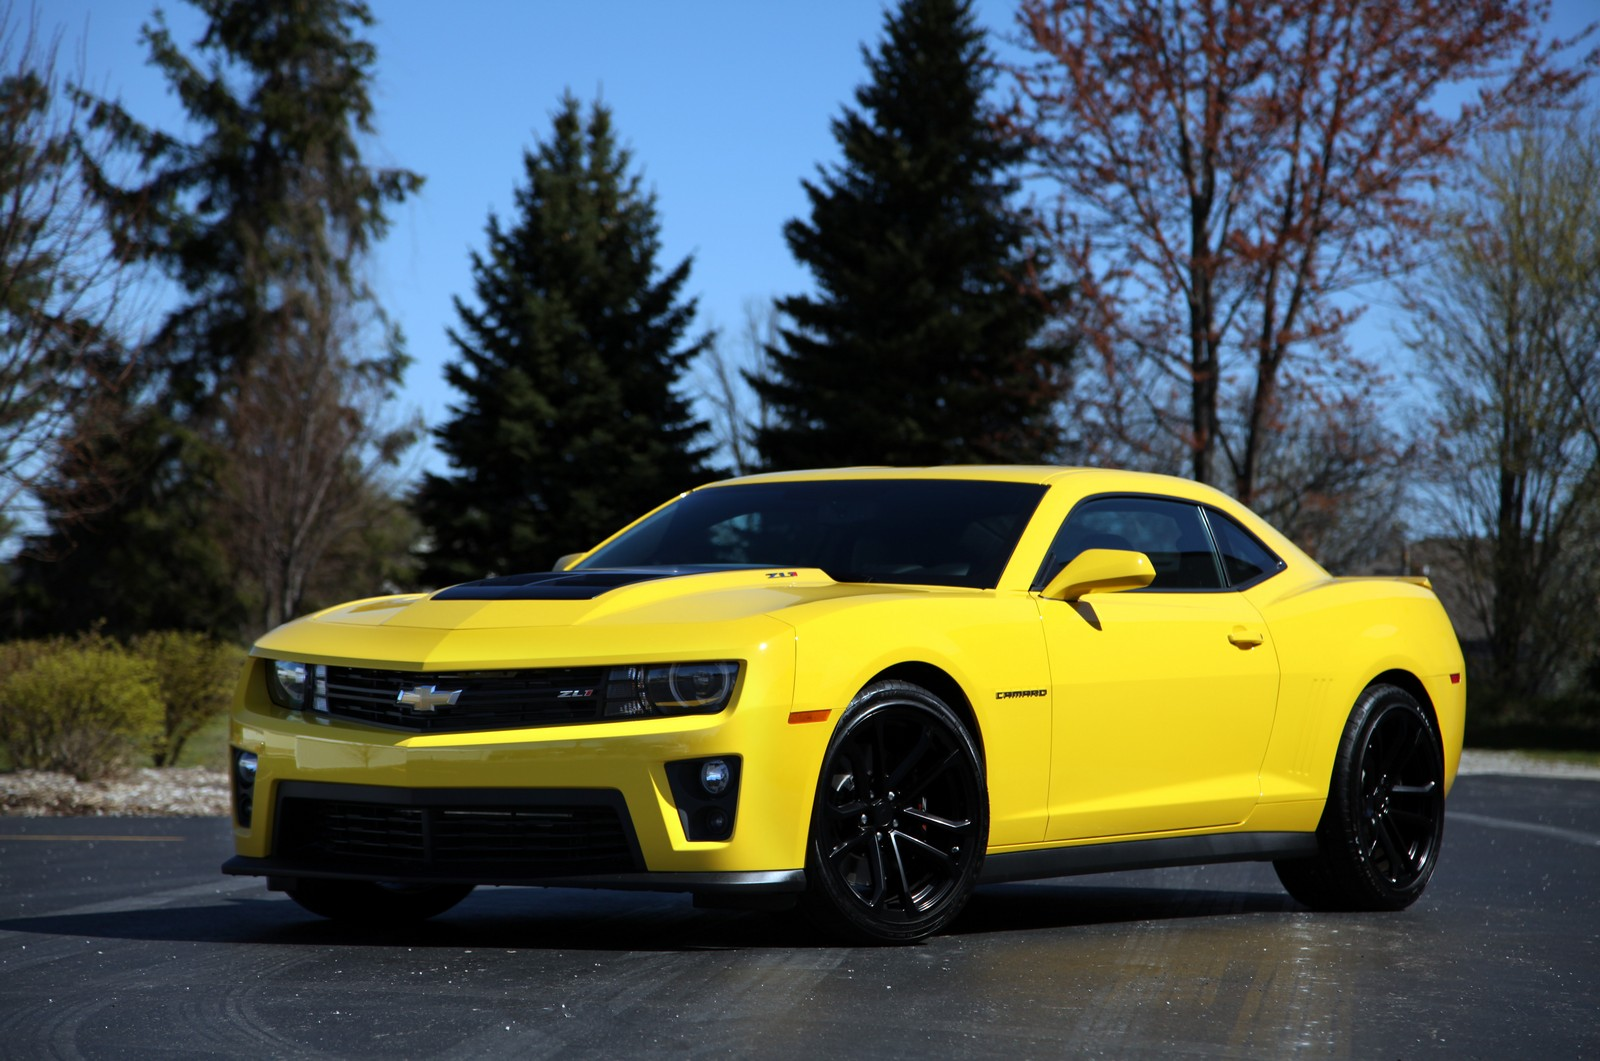 LINGENFELTER 2012 CAMARO ZL1 Computer Wallpapers Desktop Backgrounds 1600x1061